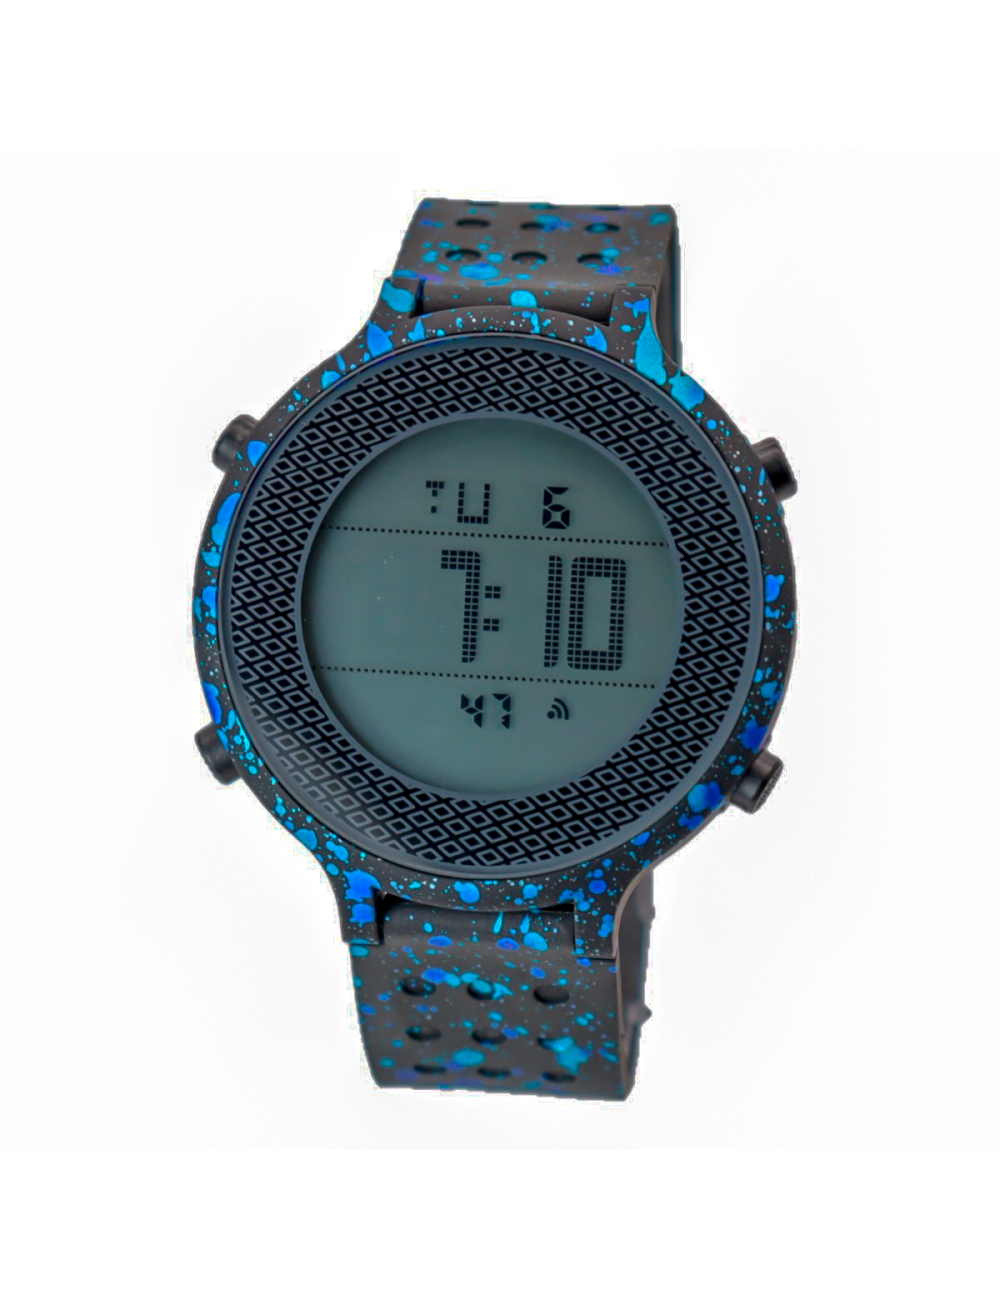 Reloj Digital Dayoshop 49,900.00